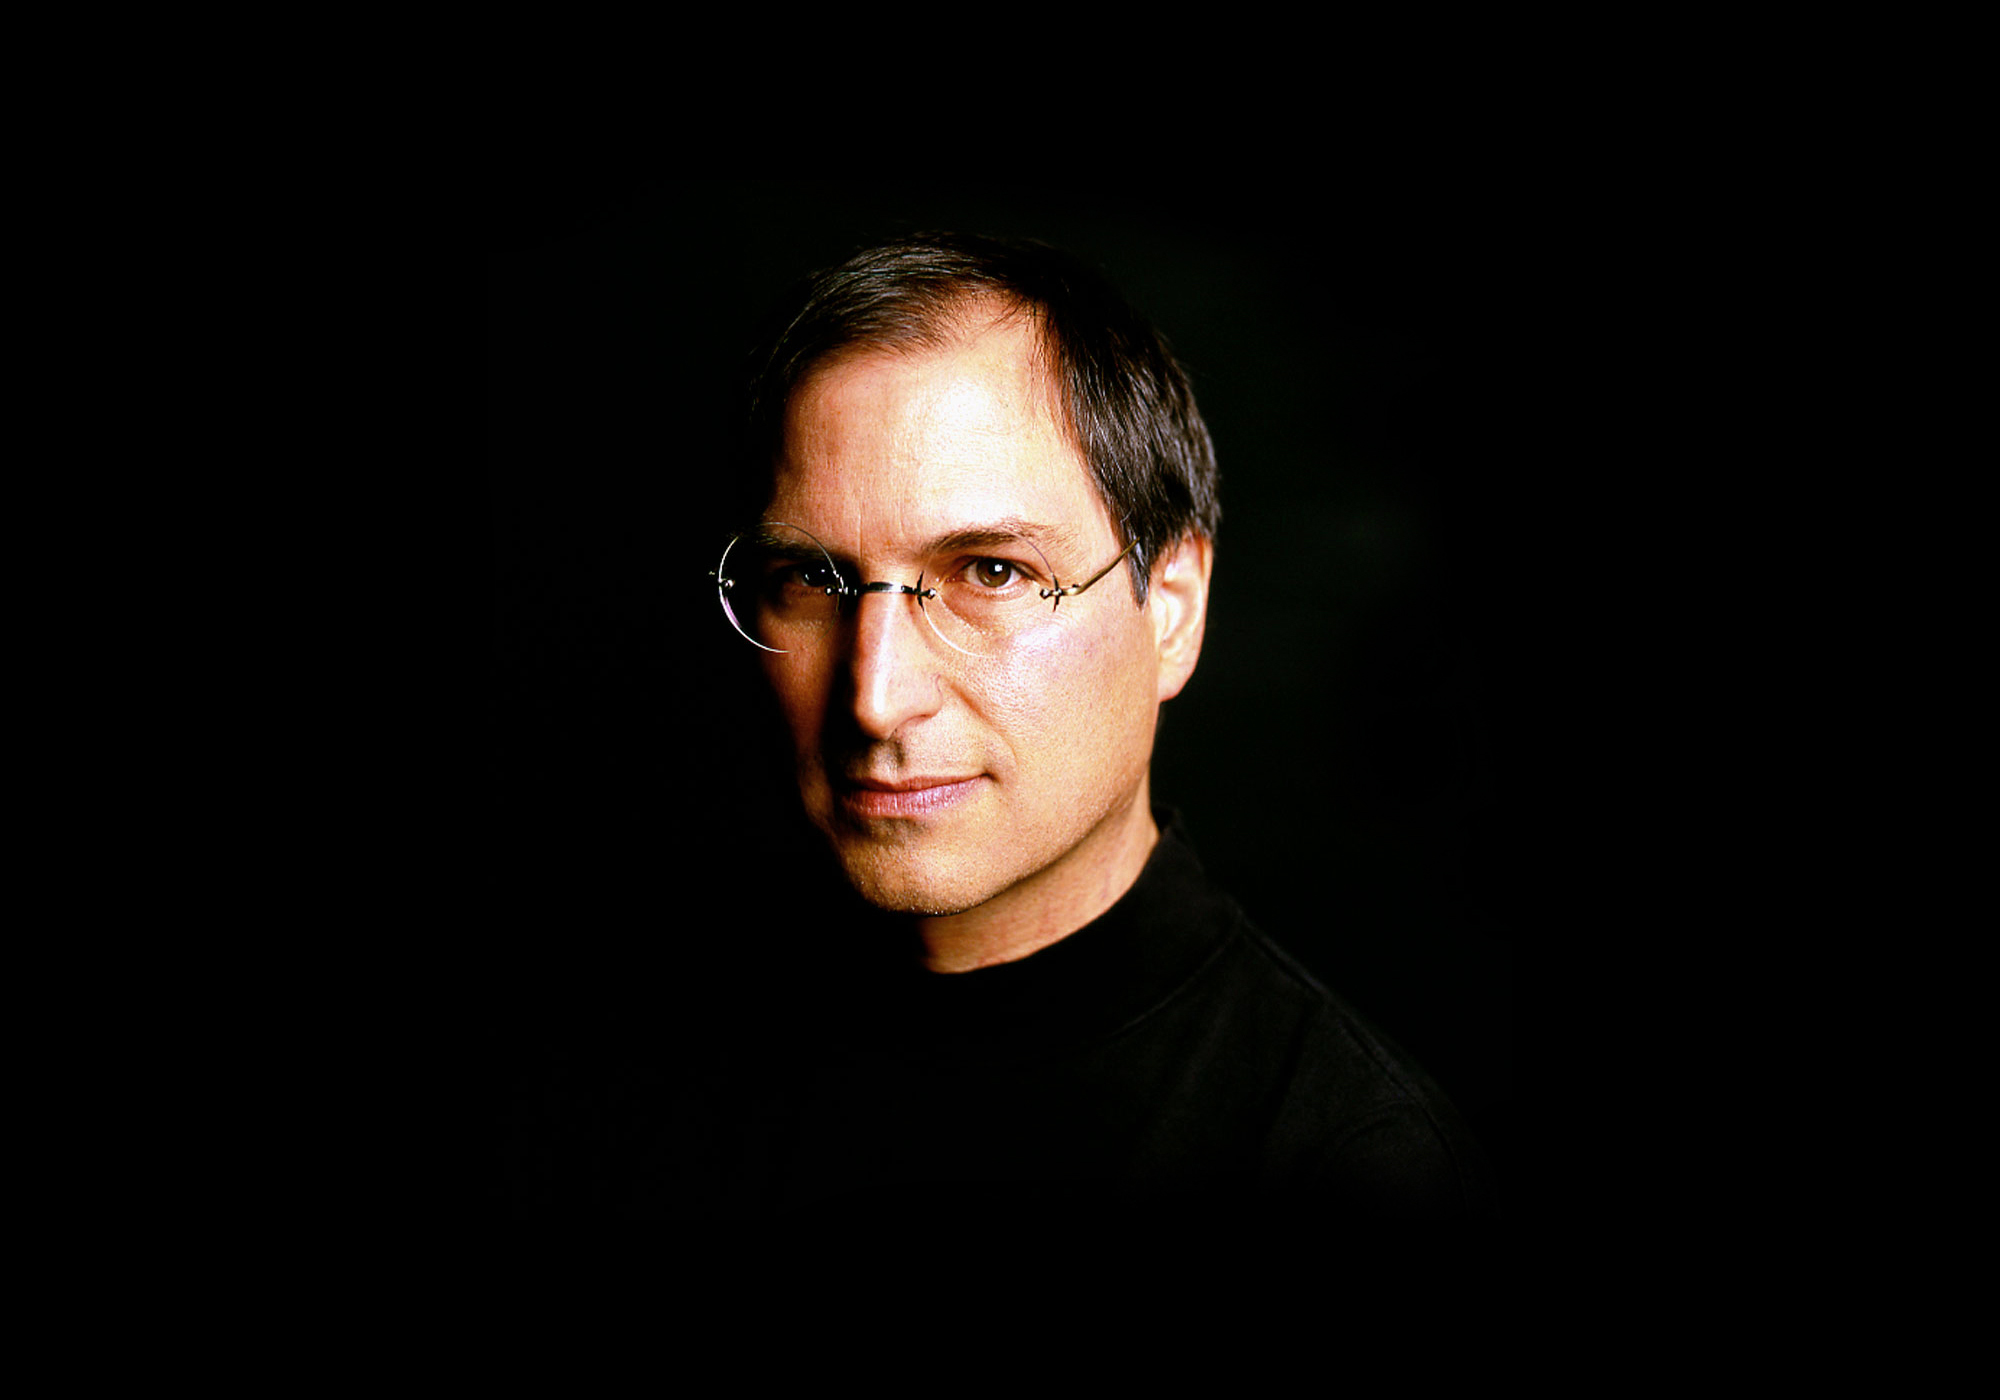 Portrait of Steve Jobs with dramatic lighting